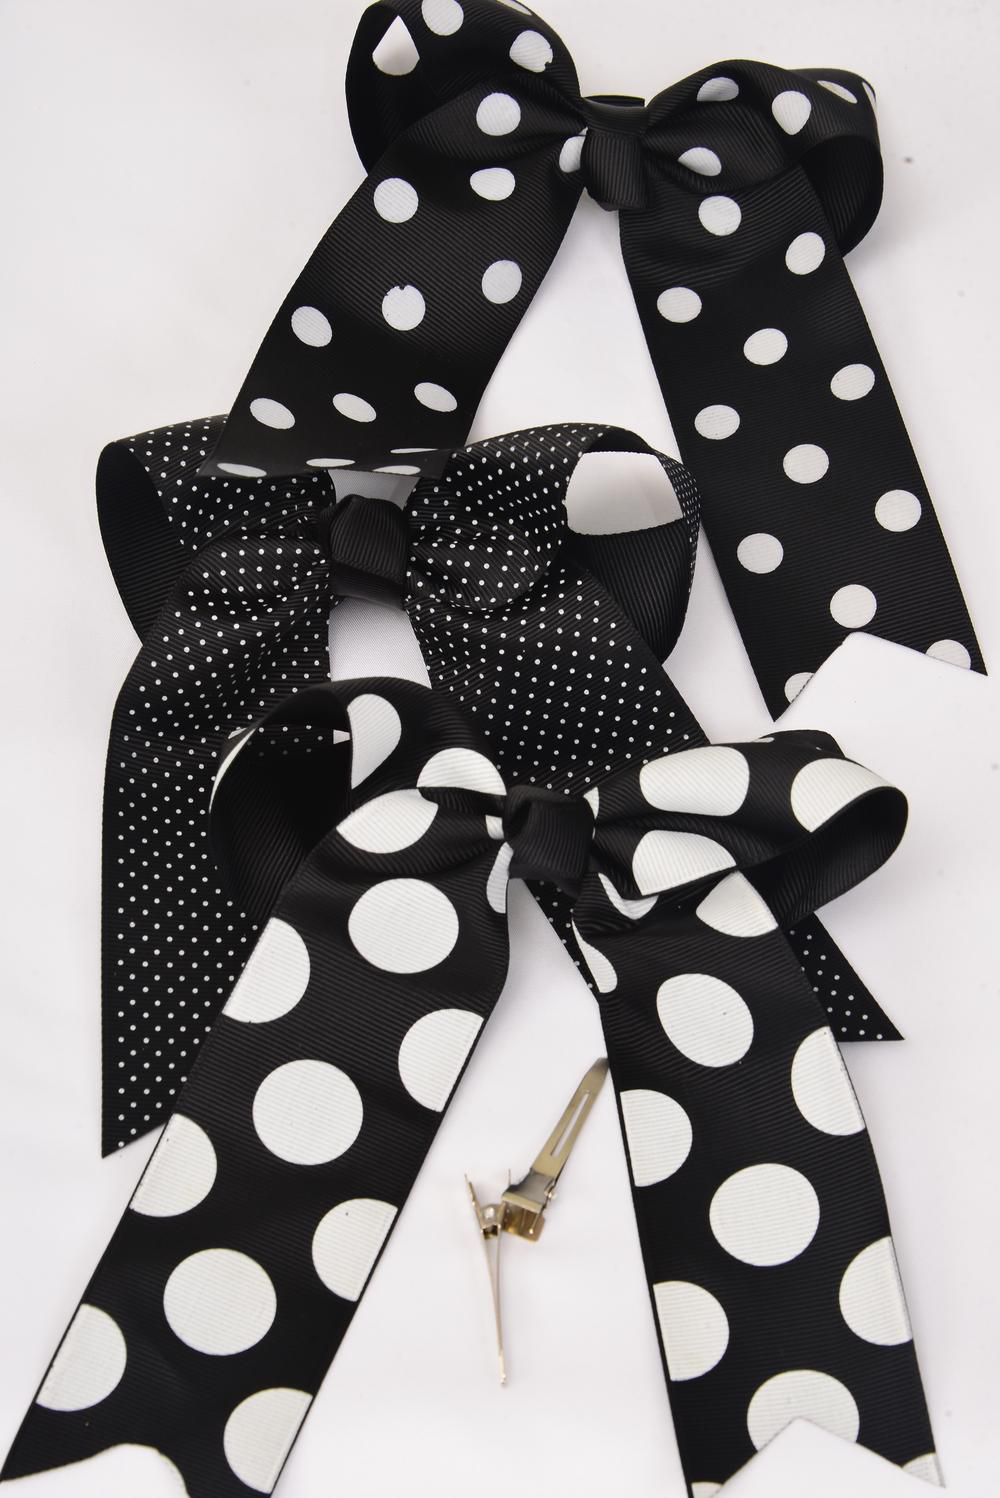 "Hair Bow Long Tail Polkadots Black Mix Grograin Bowtie/DZ **Black** Alligator Clip,Size-6.5"" x 6"" Wide,Clip Strip & UPC Code"